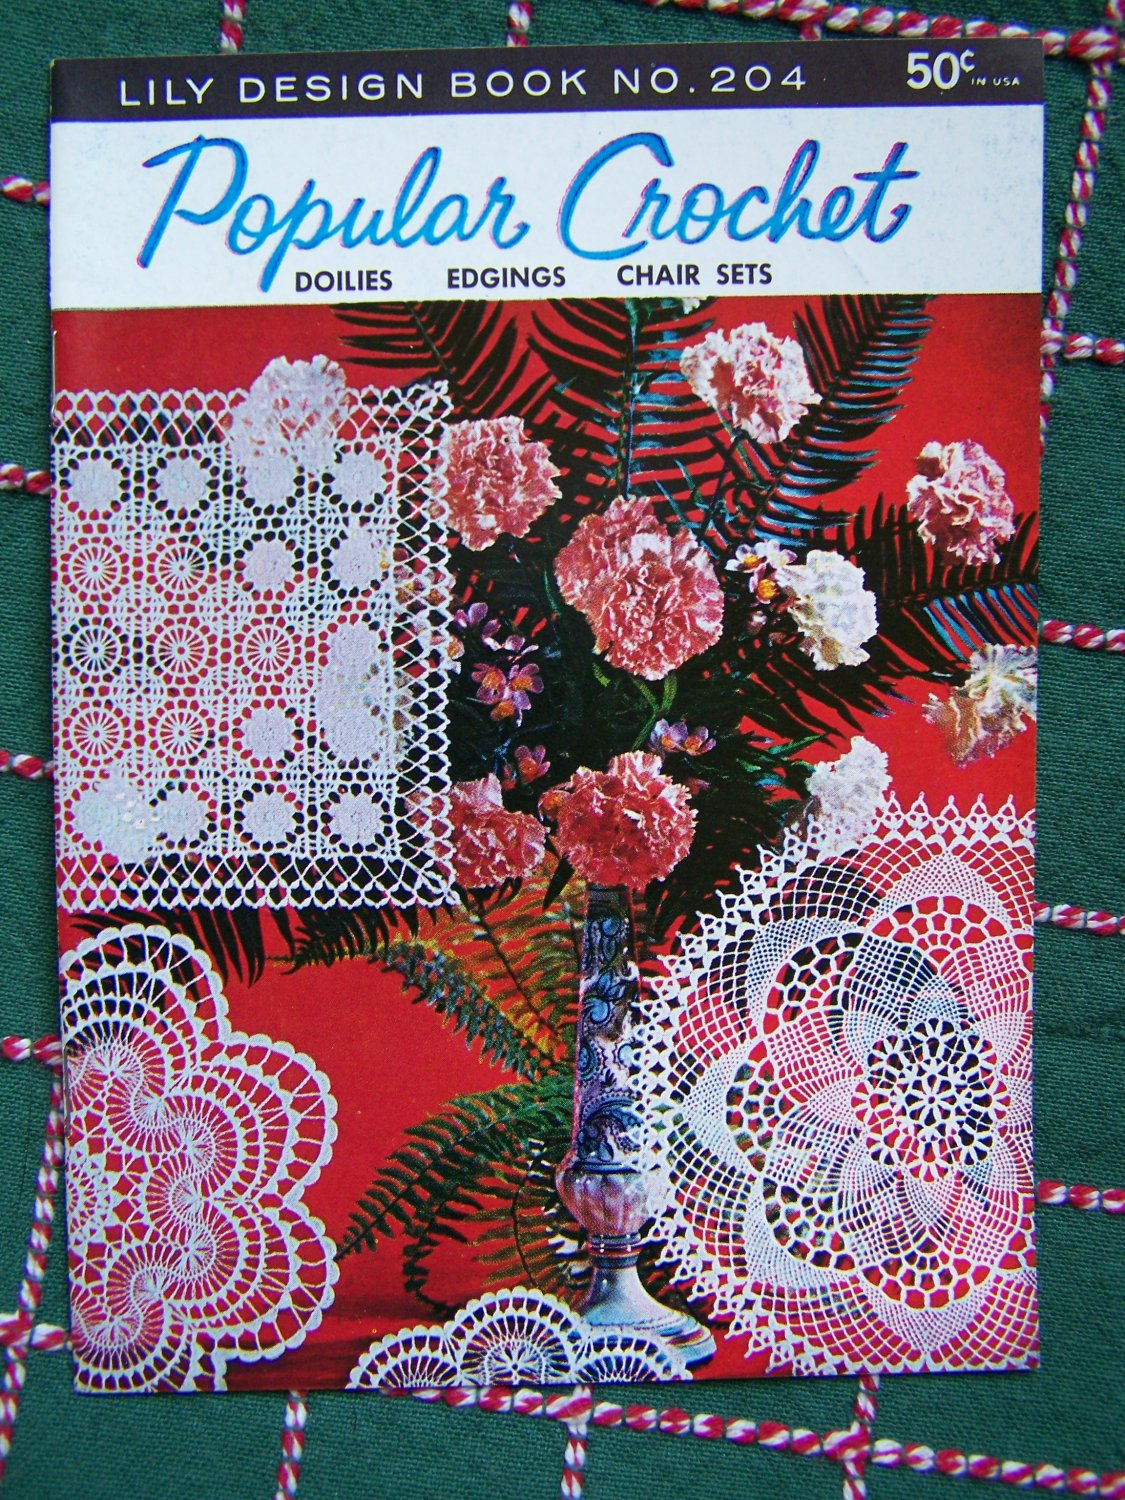 New Lily Design Popular Crochet Book 204 Vintage 1970's